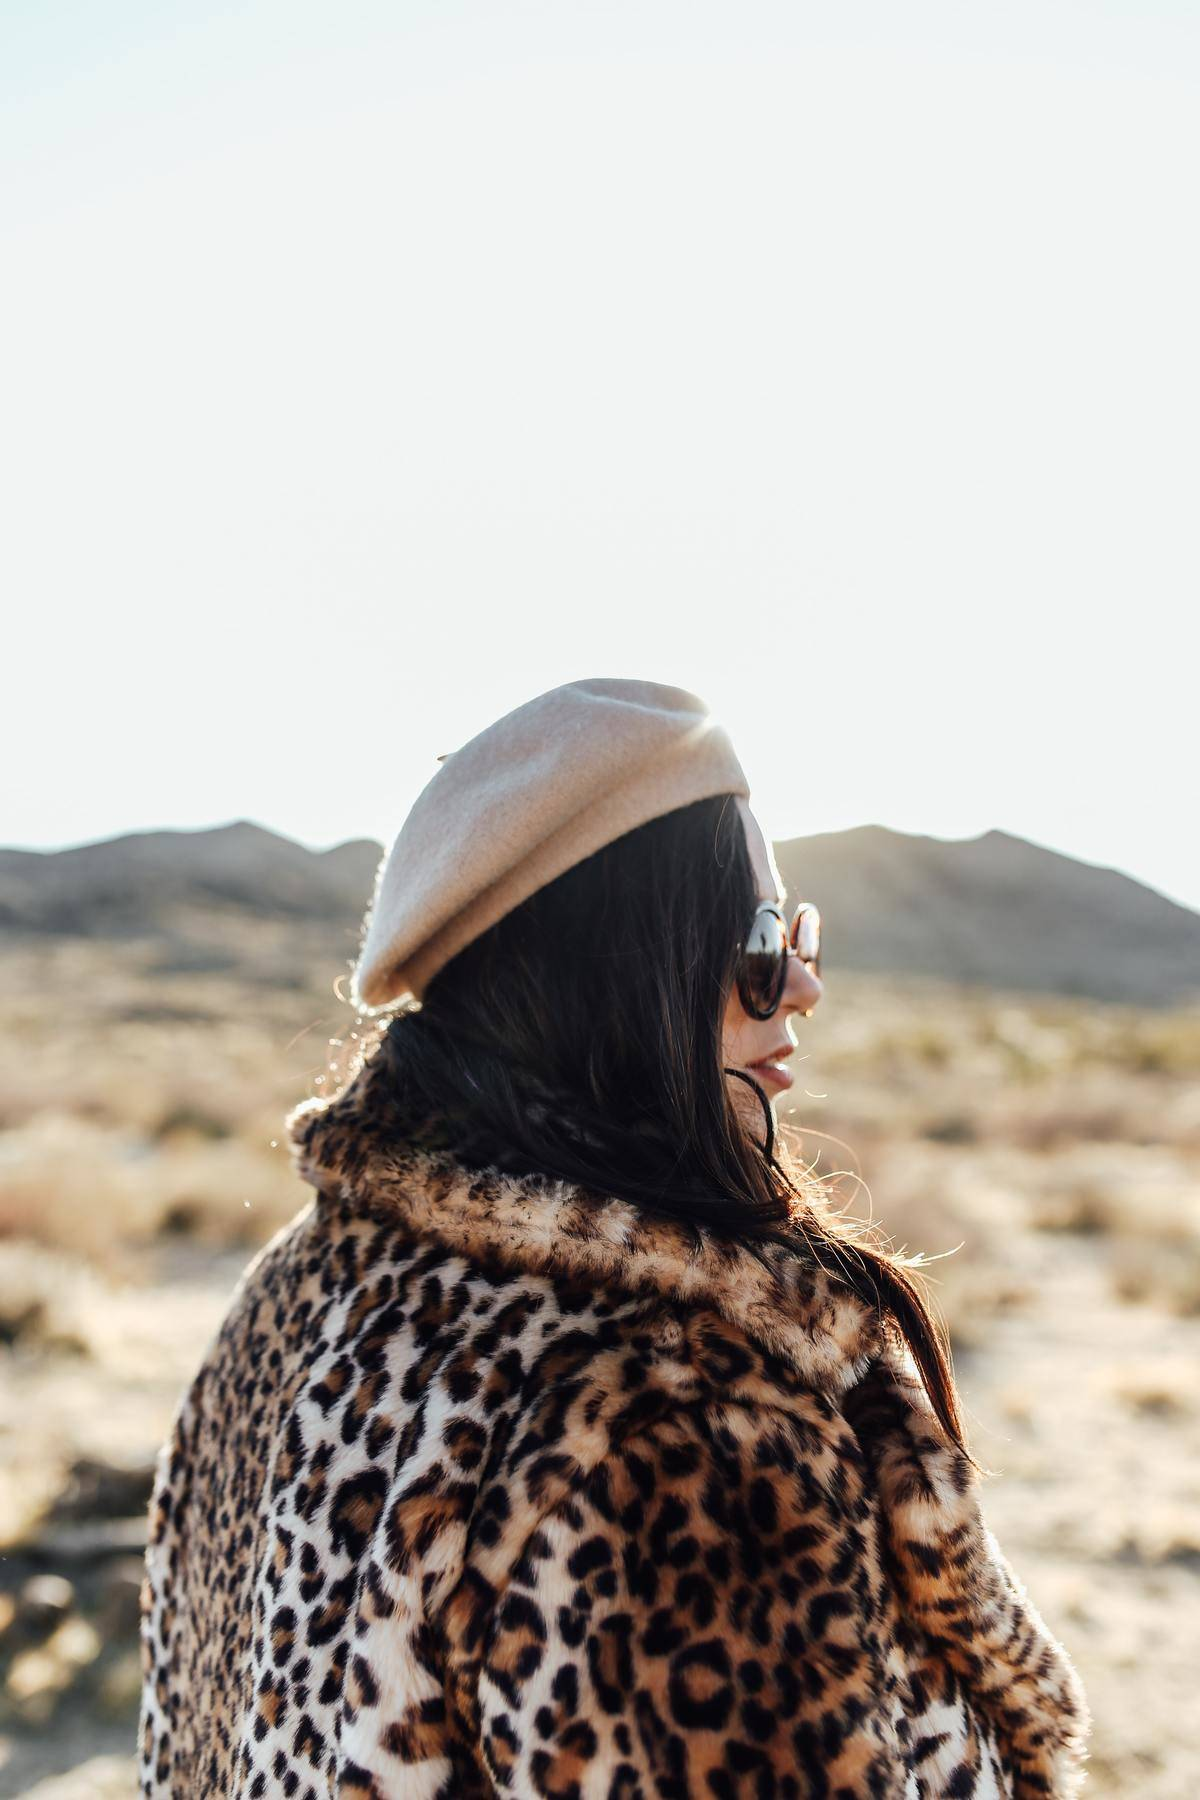 Woman looks off camera while wearing a leopard print coat.